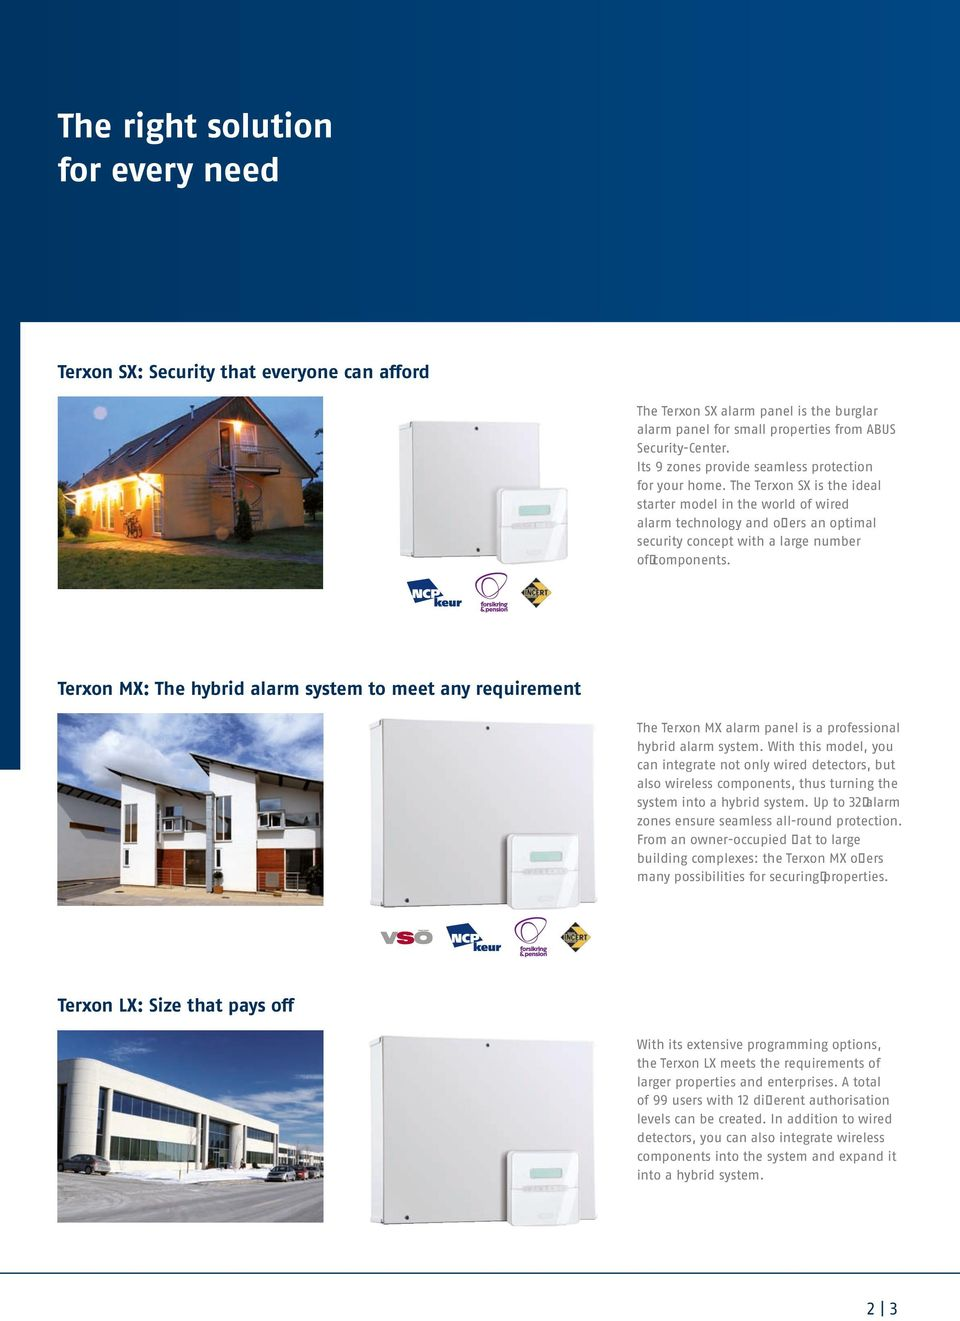 The Terxon SX is the ideal starter model in the world of wired alarm technology and offers an optimal security concept with a large number of components.